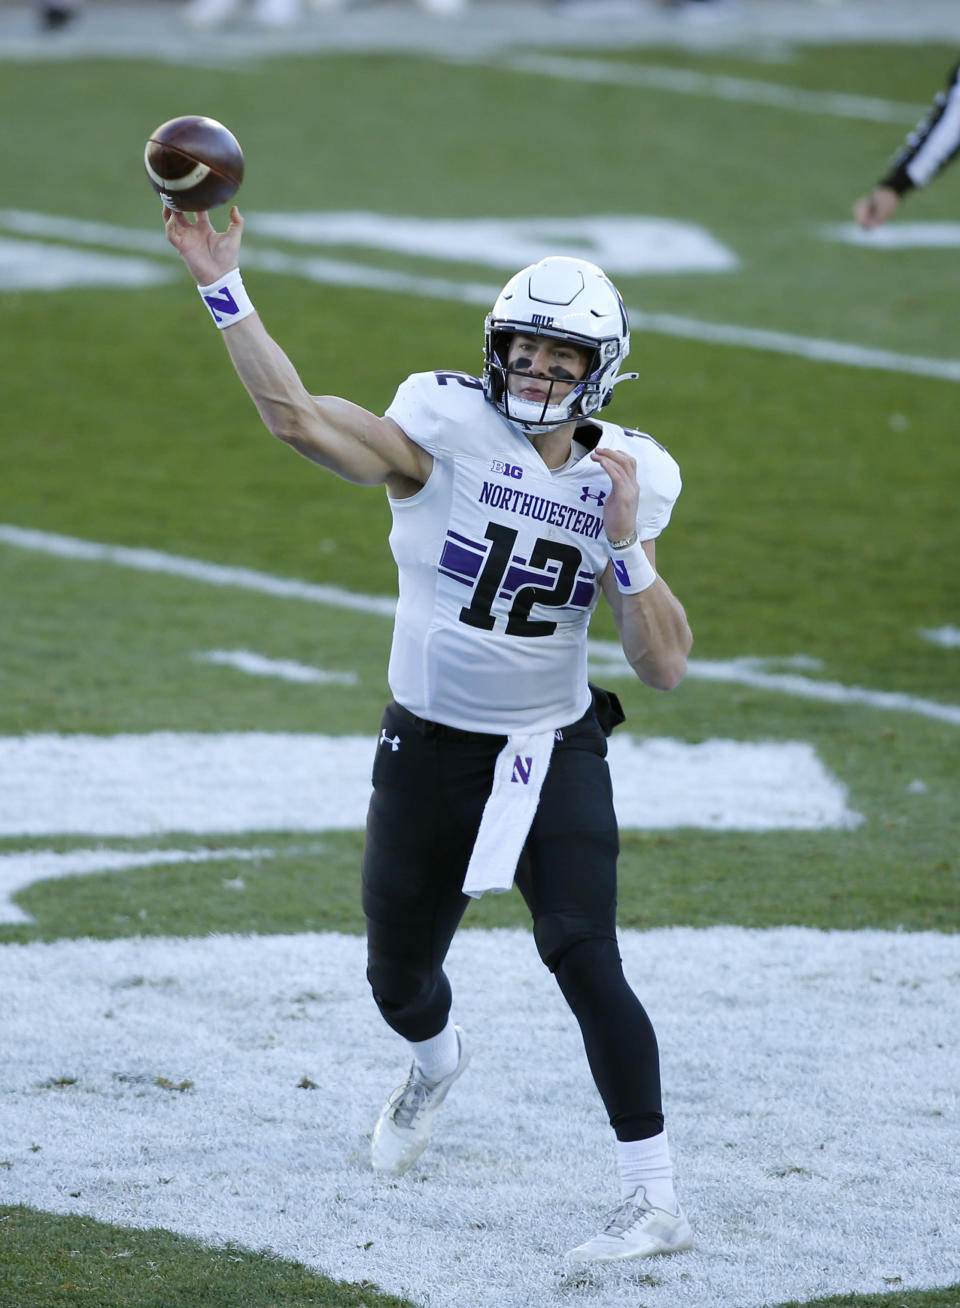 Northwestern quarterback Peyton Ramsey passes against Michigan State during the first half of an NCAA college football game, Saturday, Nov. 28, 2020, in East Lansing, Mich. (AP Photo/Al Goldis)